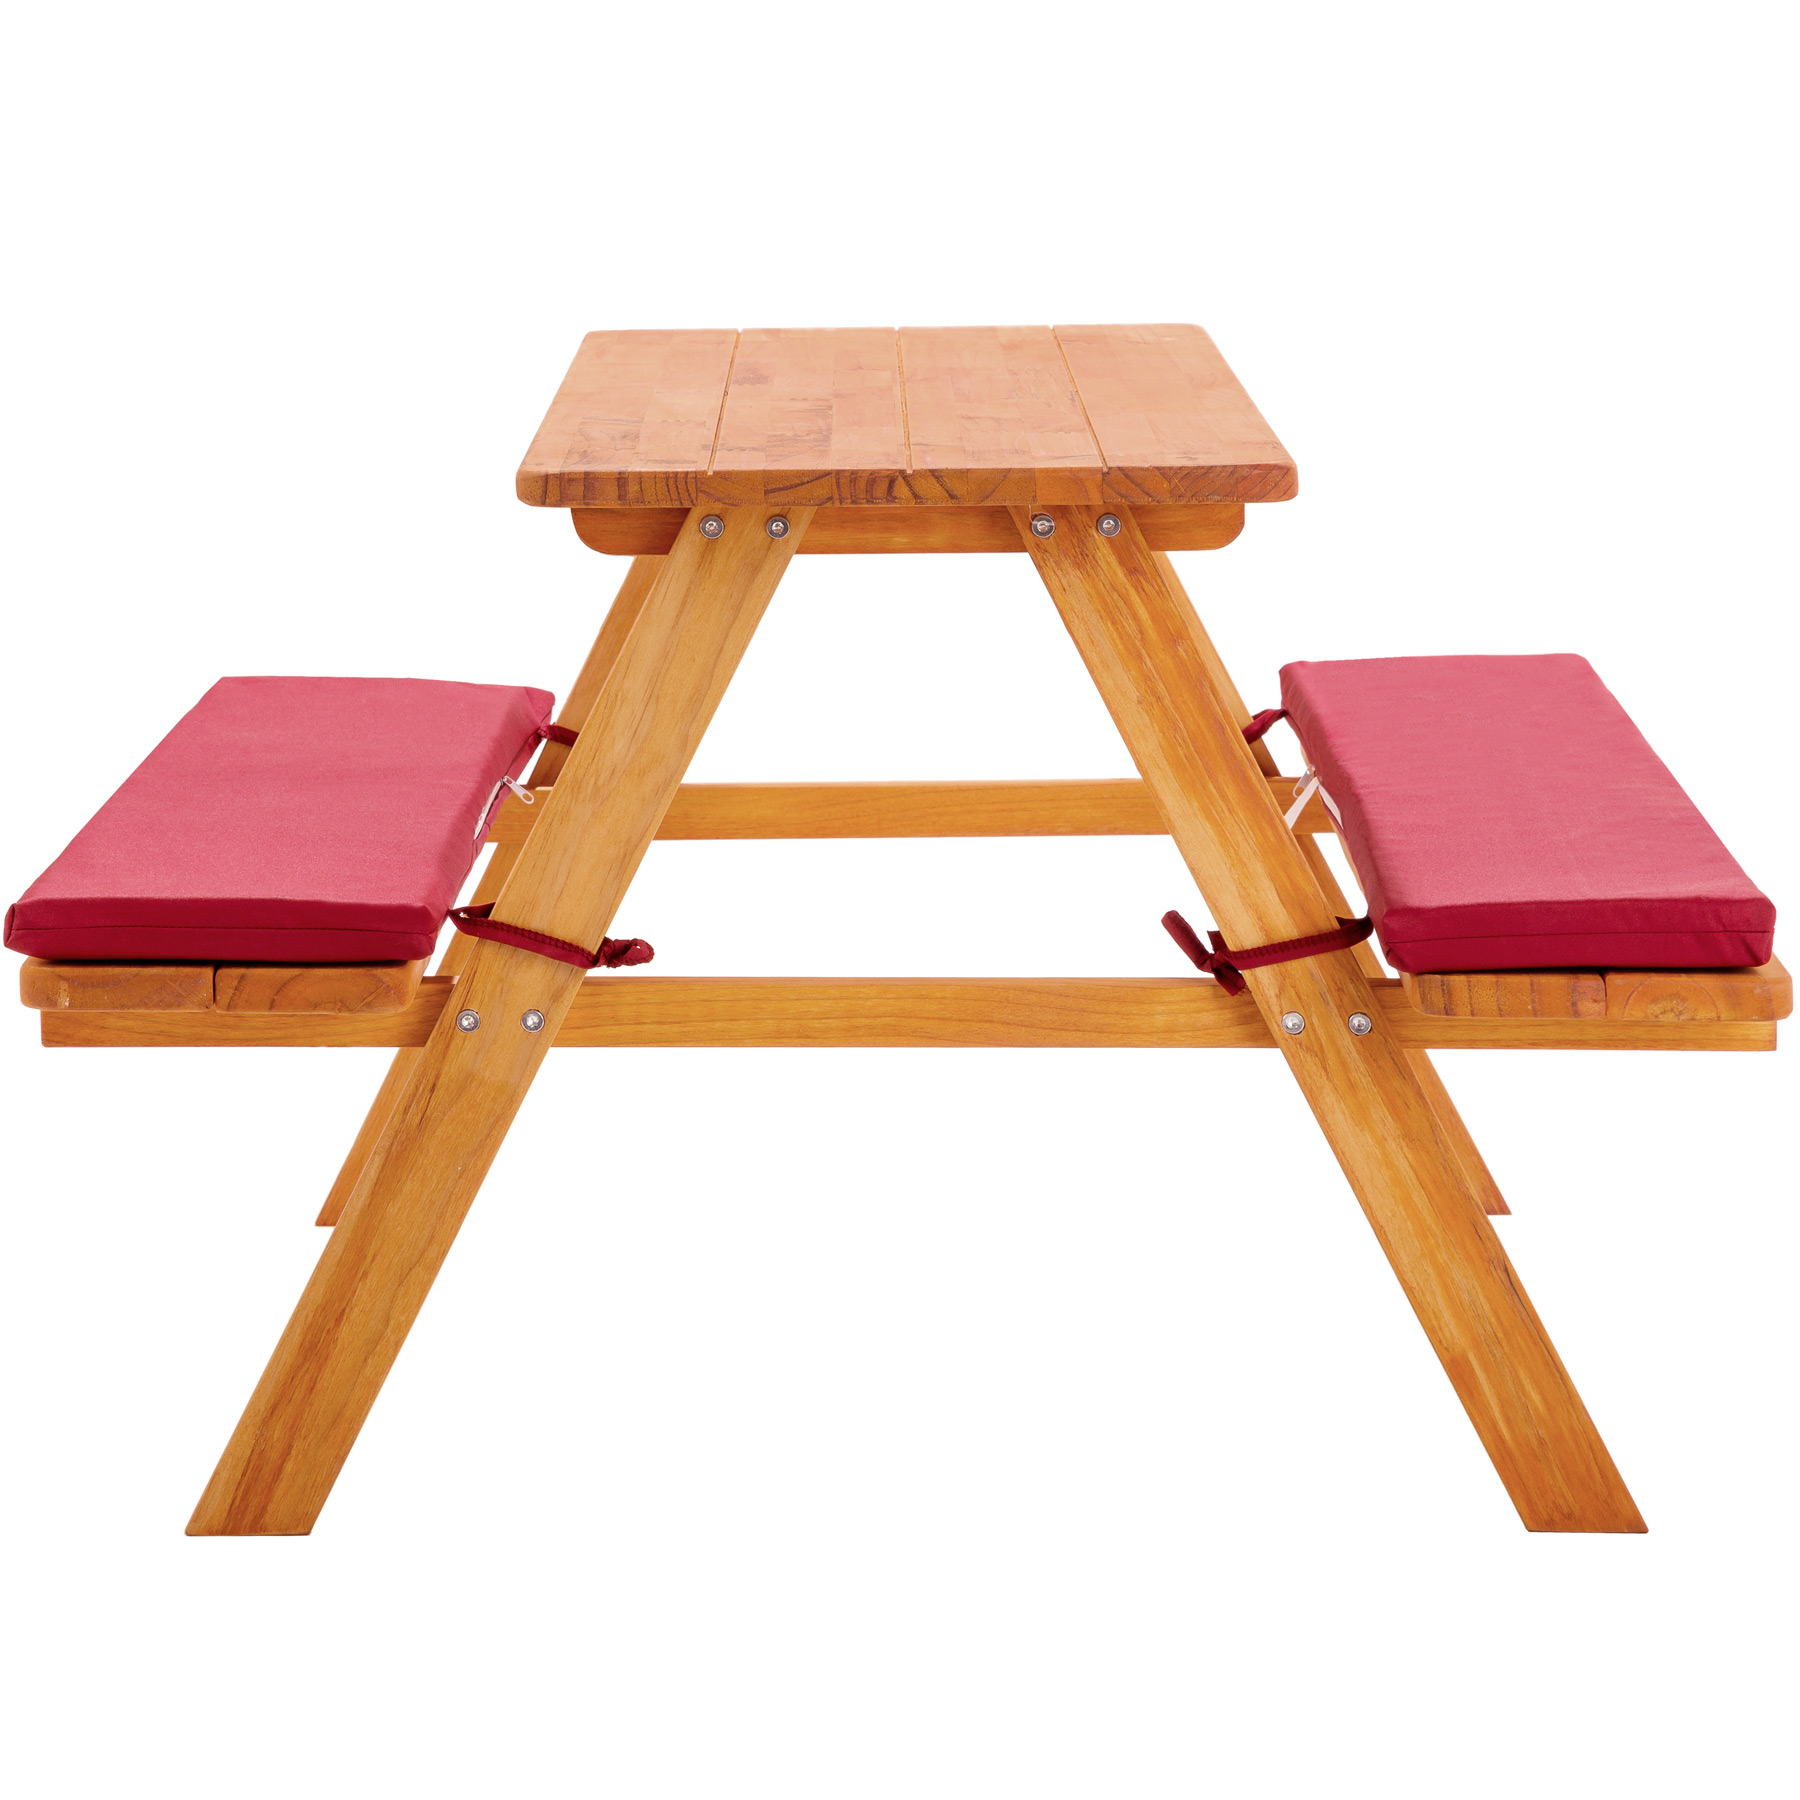 Kids picnic table bench set childrens wood garden ...